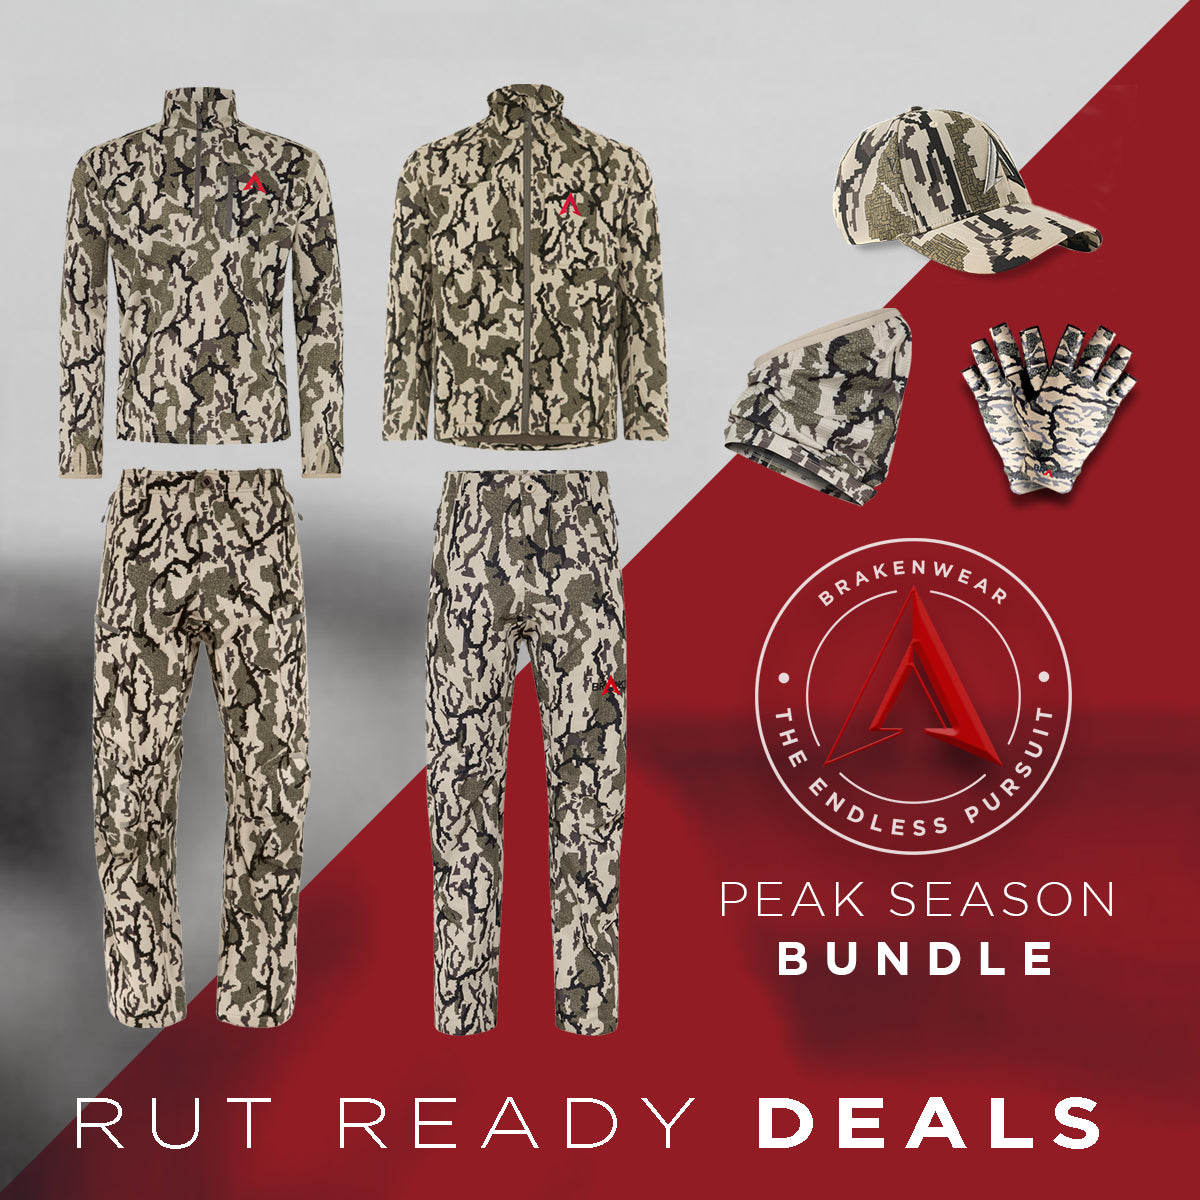 Peak Season Bundle